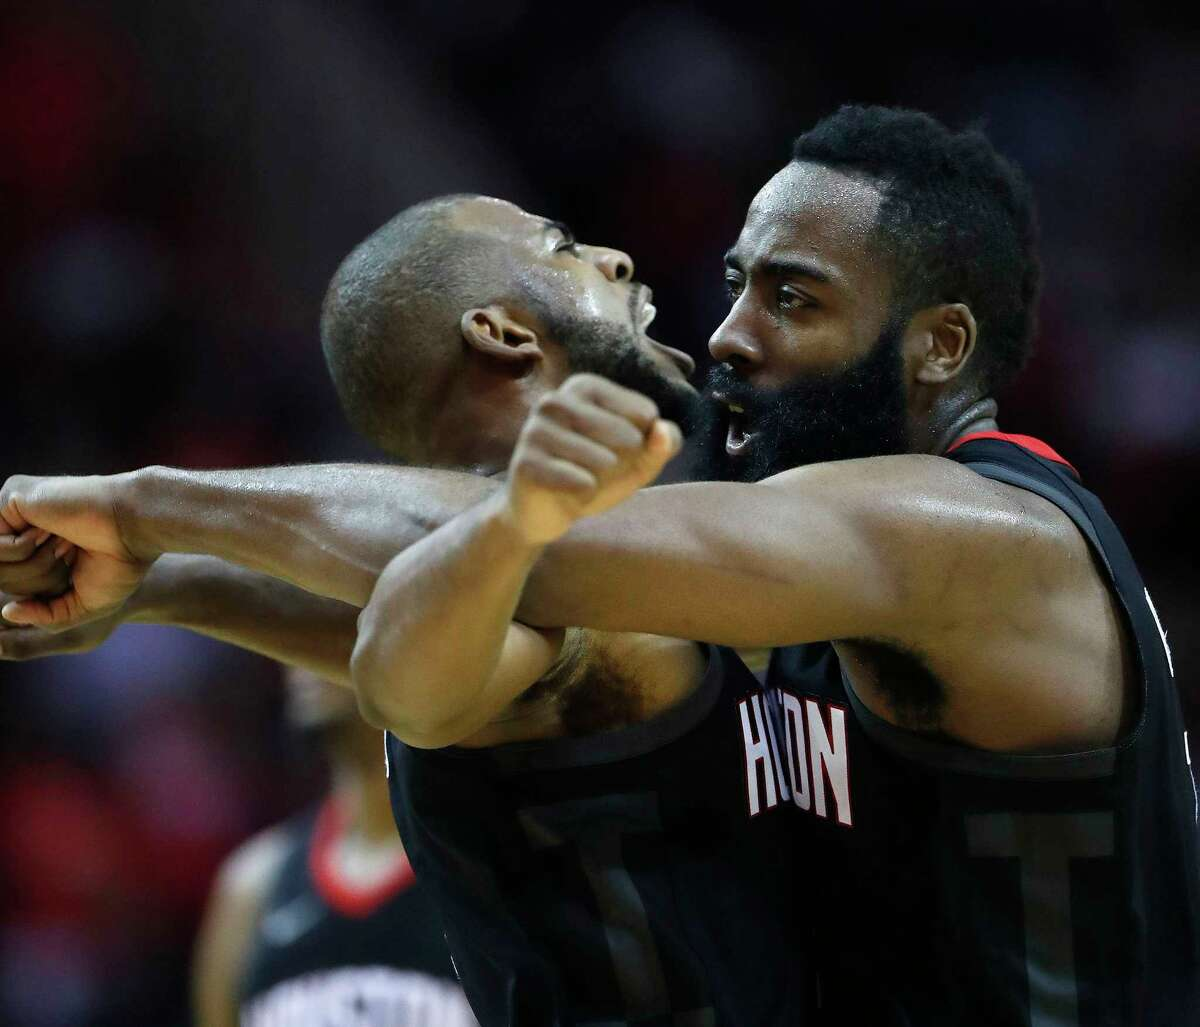 Will James Harden and Chris Paul be the combo that ends the Warriors' three-year reign in the NBA's Western Conference? The Rockets have showed they can match up to Golden State this year, at least in the regular season.